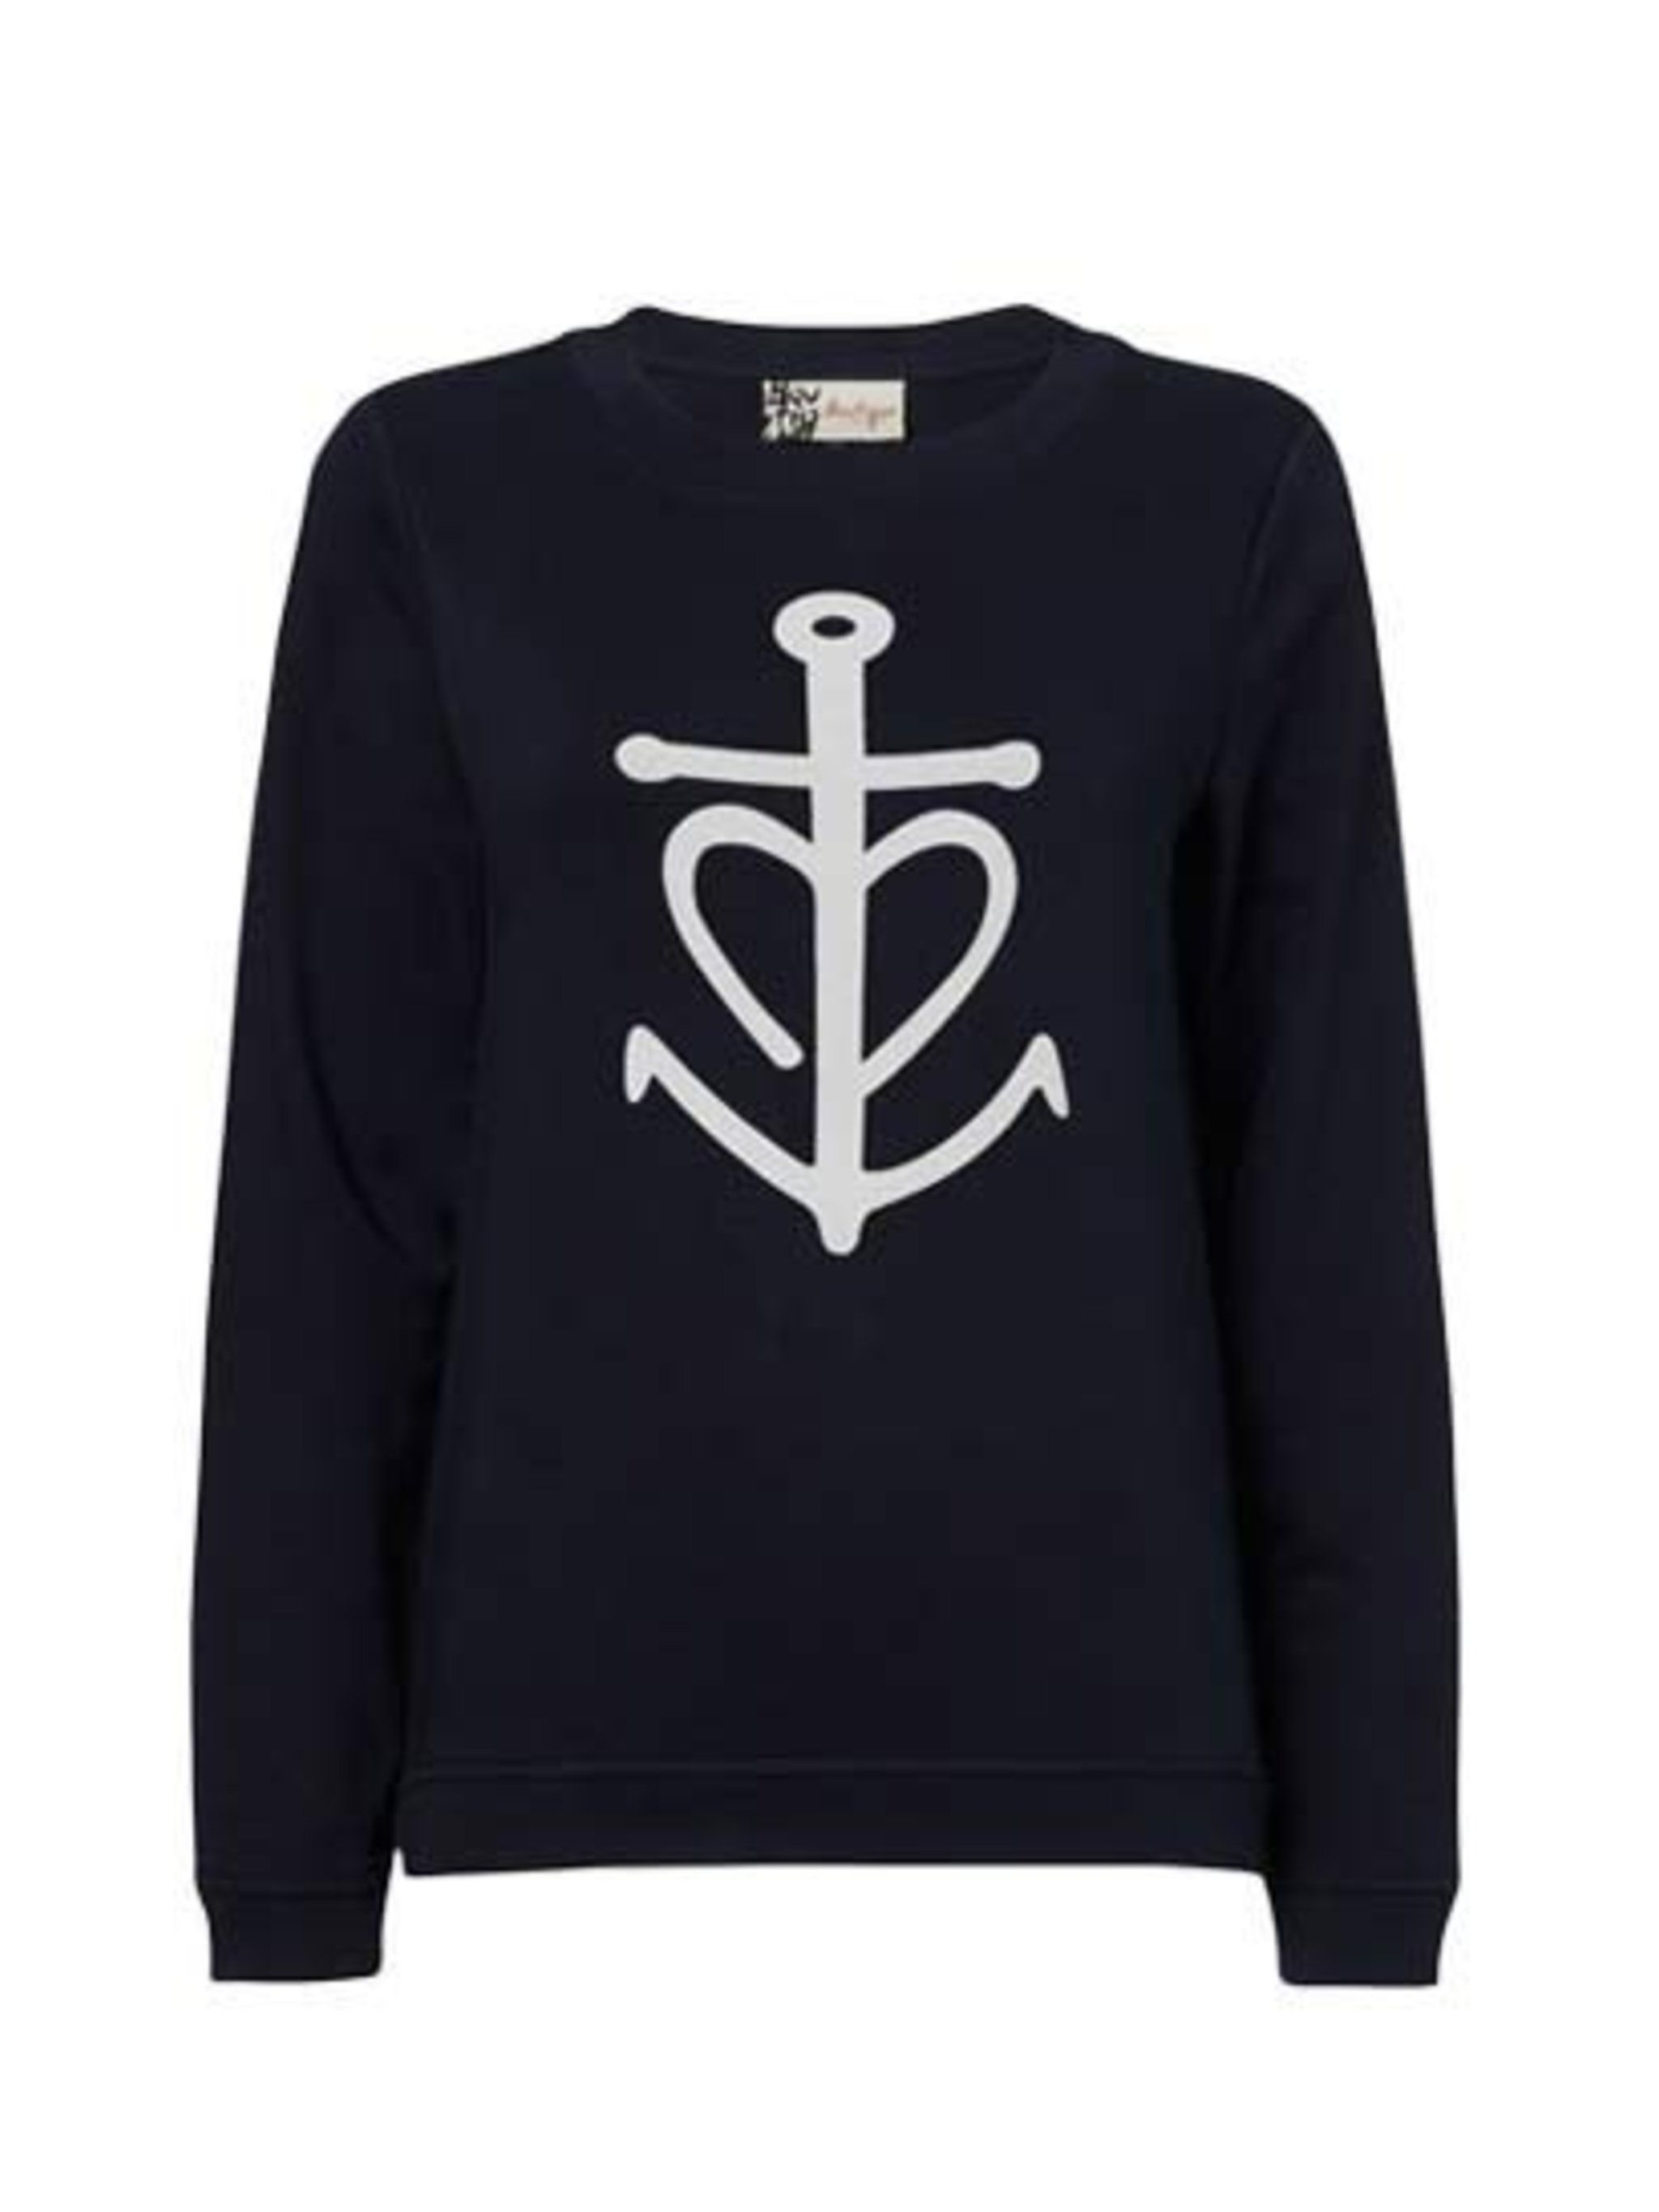 """<p>Tap into the nautical trend with this simple sweatshirt; yacht not included, sadly.</p><p><a href=""""http://www.jaeger.co.uk/Anchor%20Sweatshirt/680073H,en_GB,pd.html?dwvar_680073H_color=75000&dwvar_680073H_size=XS&start=7&cgid=new_in_boutique"""">Jaeger Bo"""